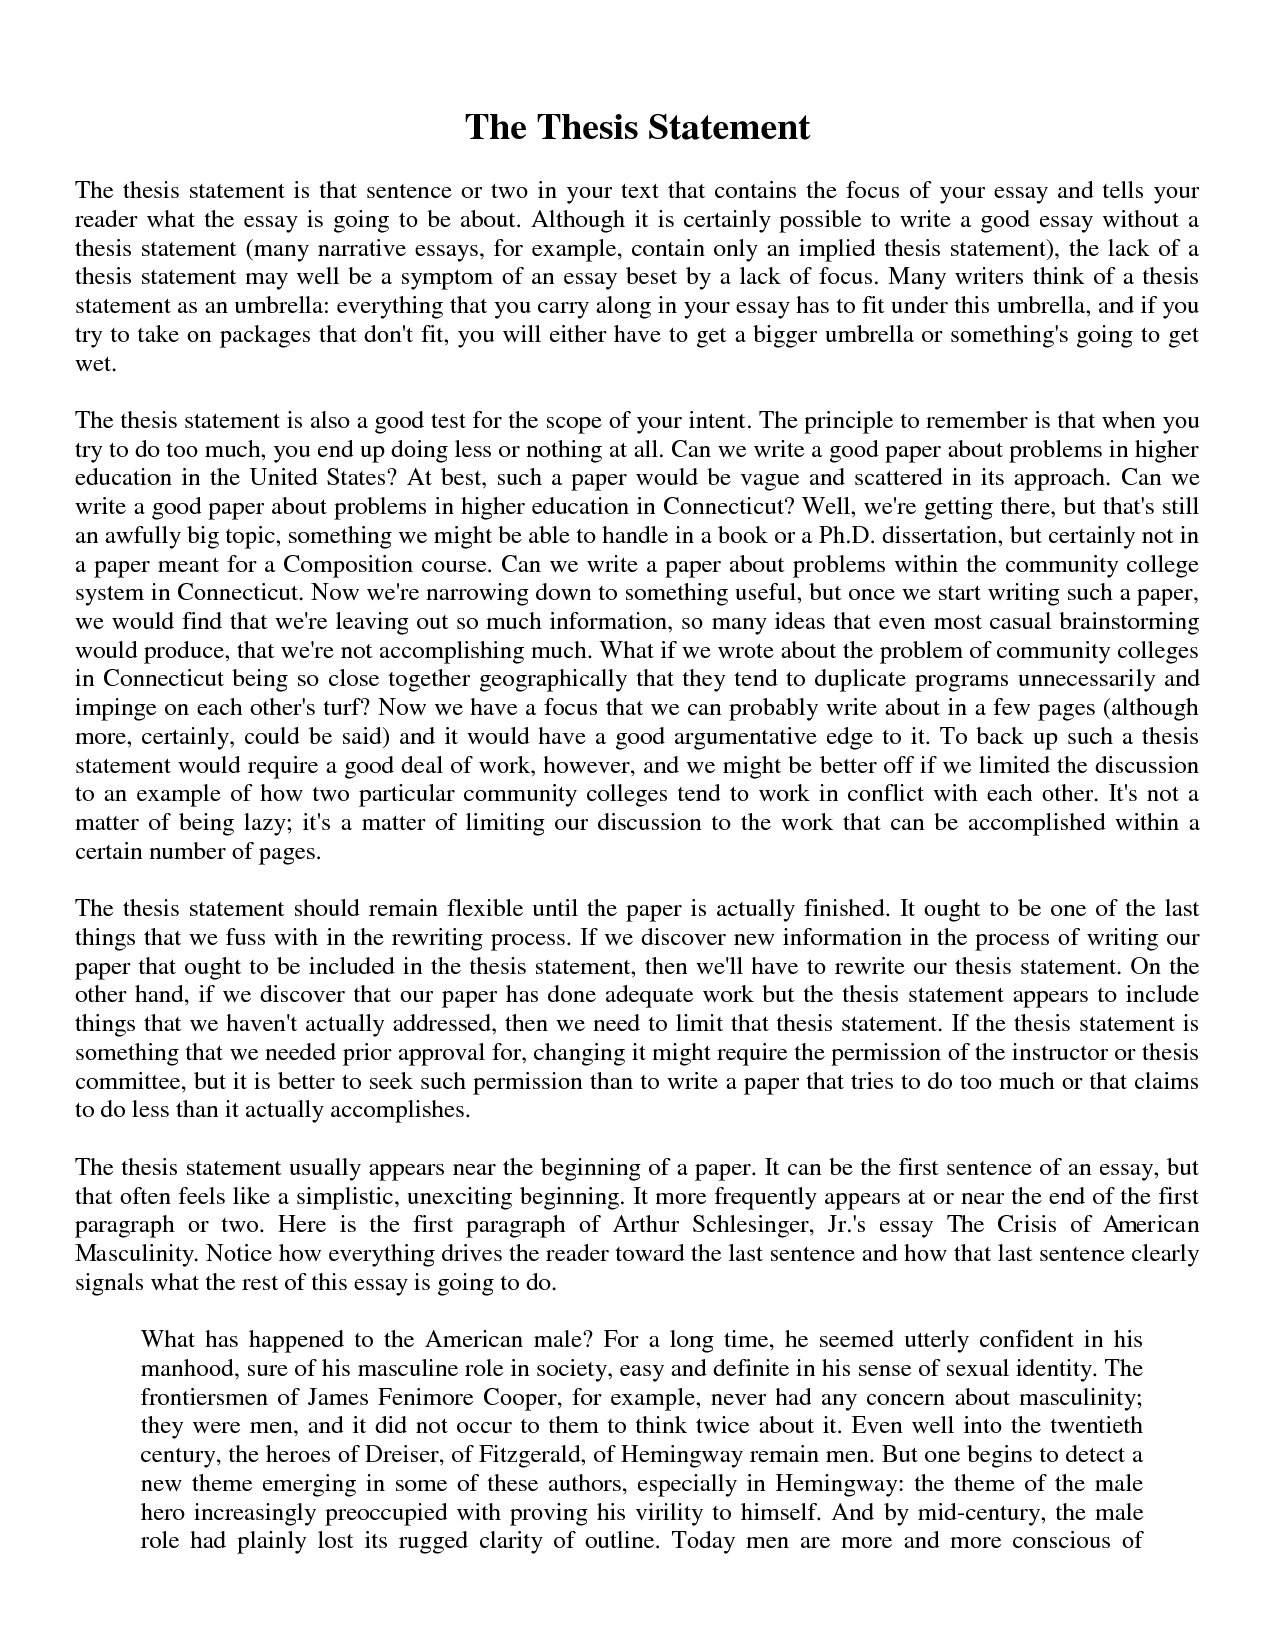 008 What Is Thesis Statement In An Essay Lt1odxucuo Fascinating A The Purpose Of Argumentative Informative Full